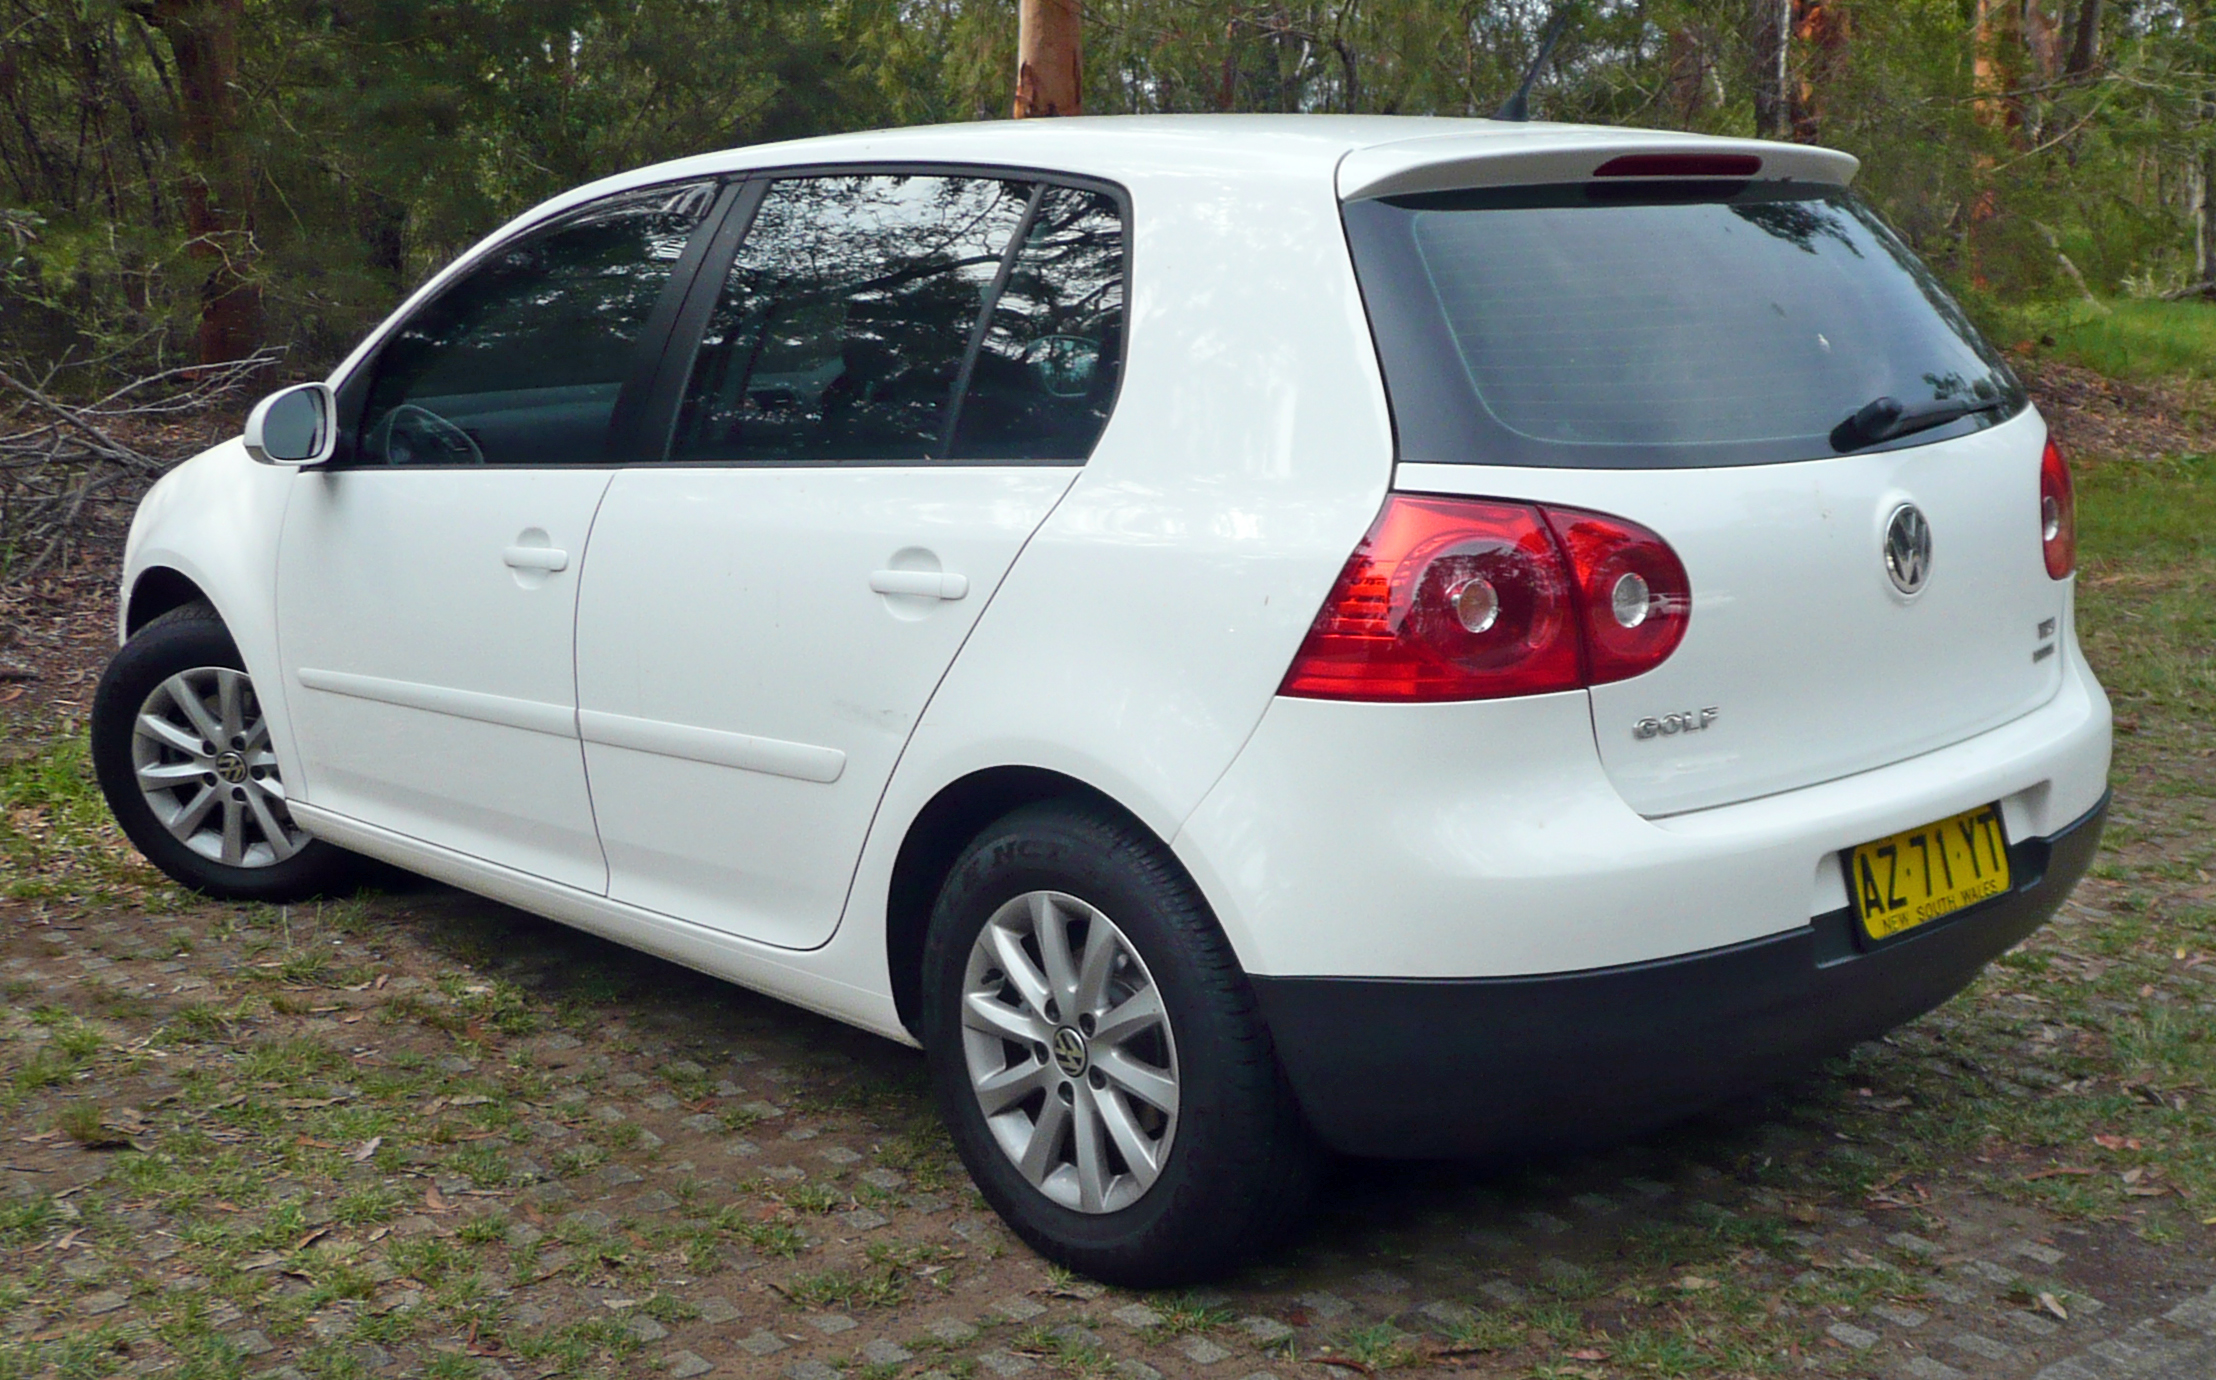 file 2008 volkswagen golf 1k my09 edition 1 9 tdi 5 door hatchback 2010 01 17 jpg. Black Bedroom Furniture Sets. Home Design Ideas